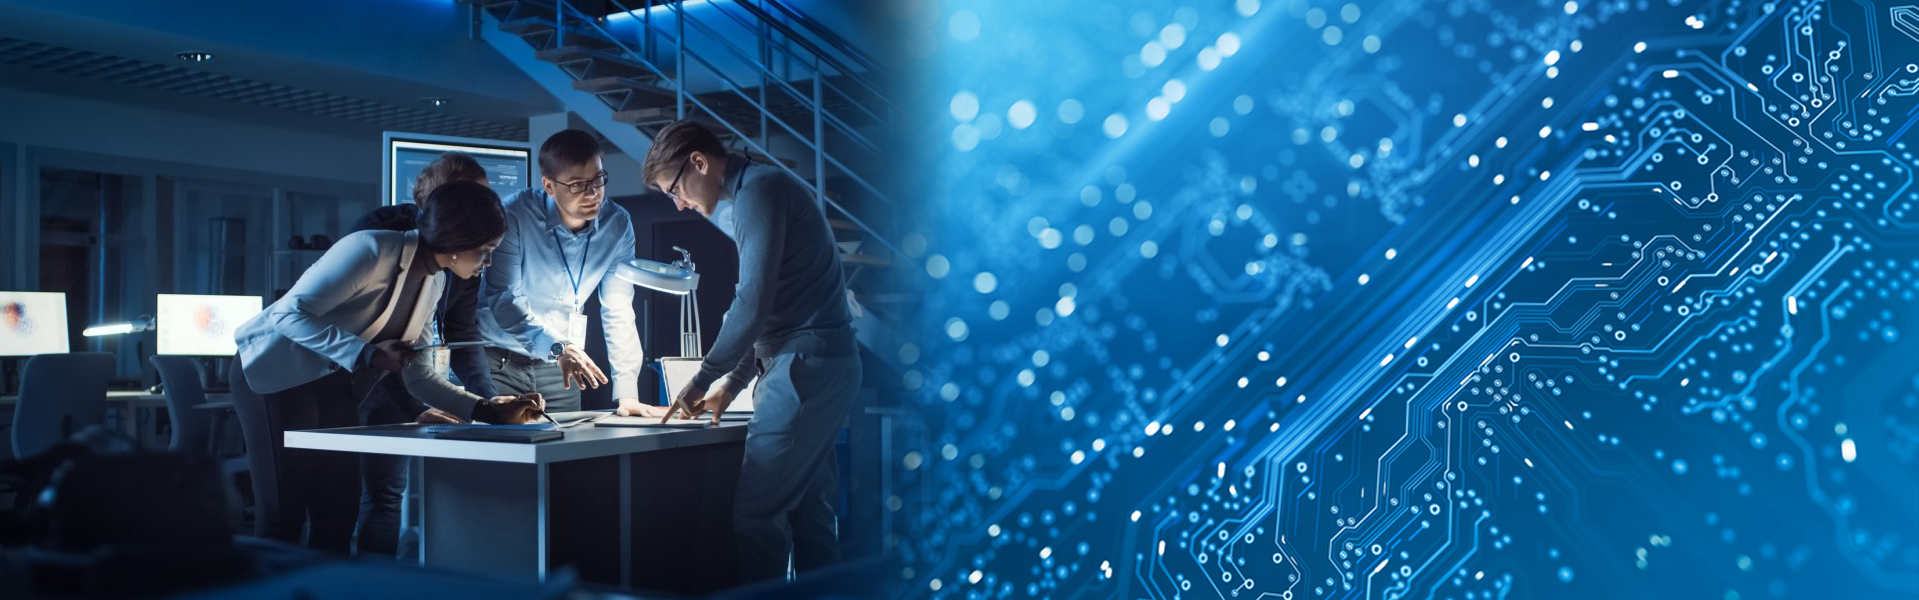 3dexperience for the it and technology industry